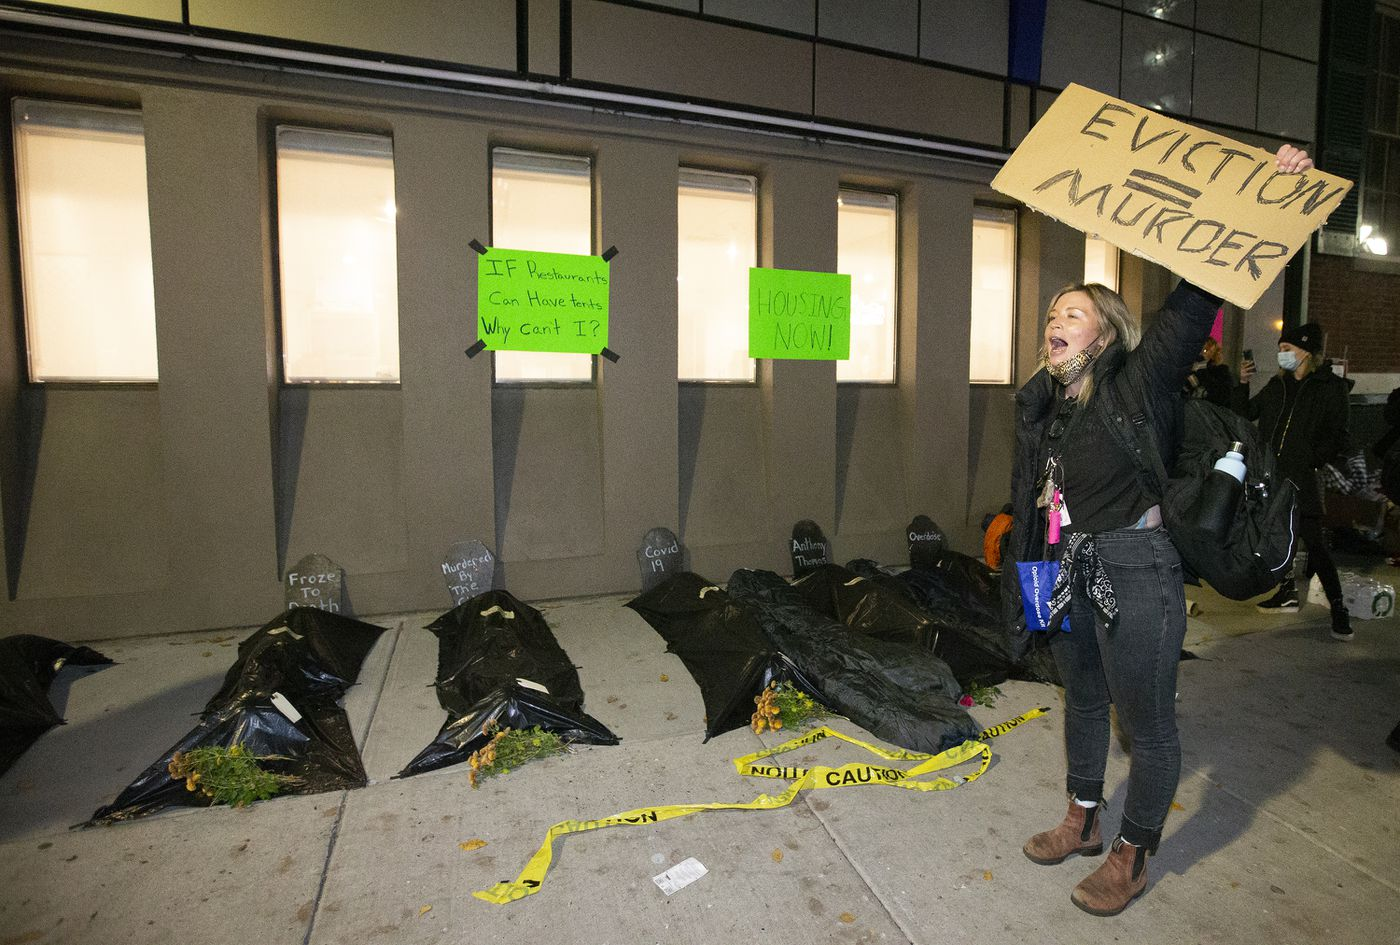 Veronica Carden of Club Sandwich Philly, stands outside the Holiday Inn with fake body bags on the sidewalk as advocates for the homeless created an encampment on Dec. 10.